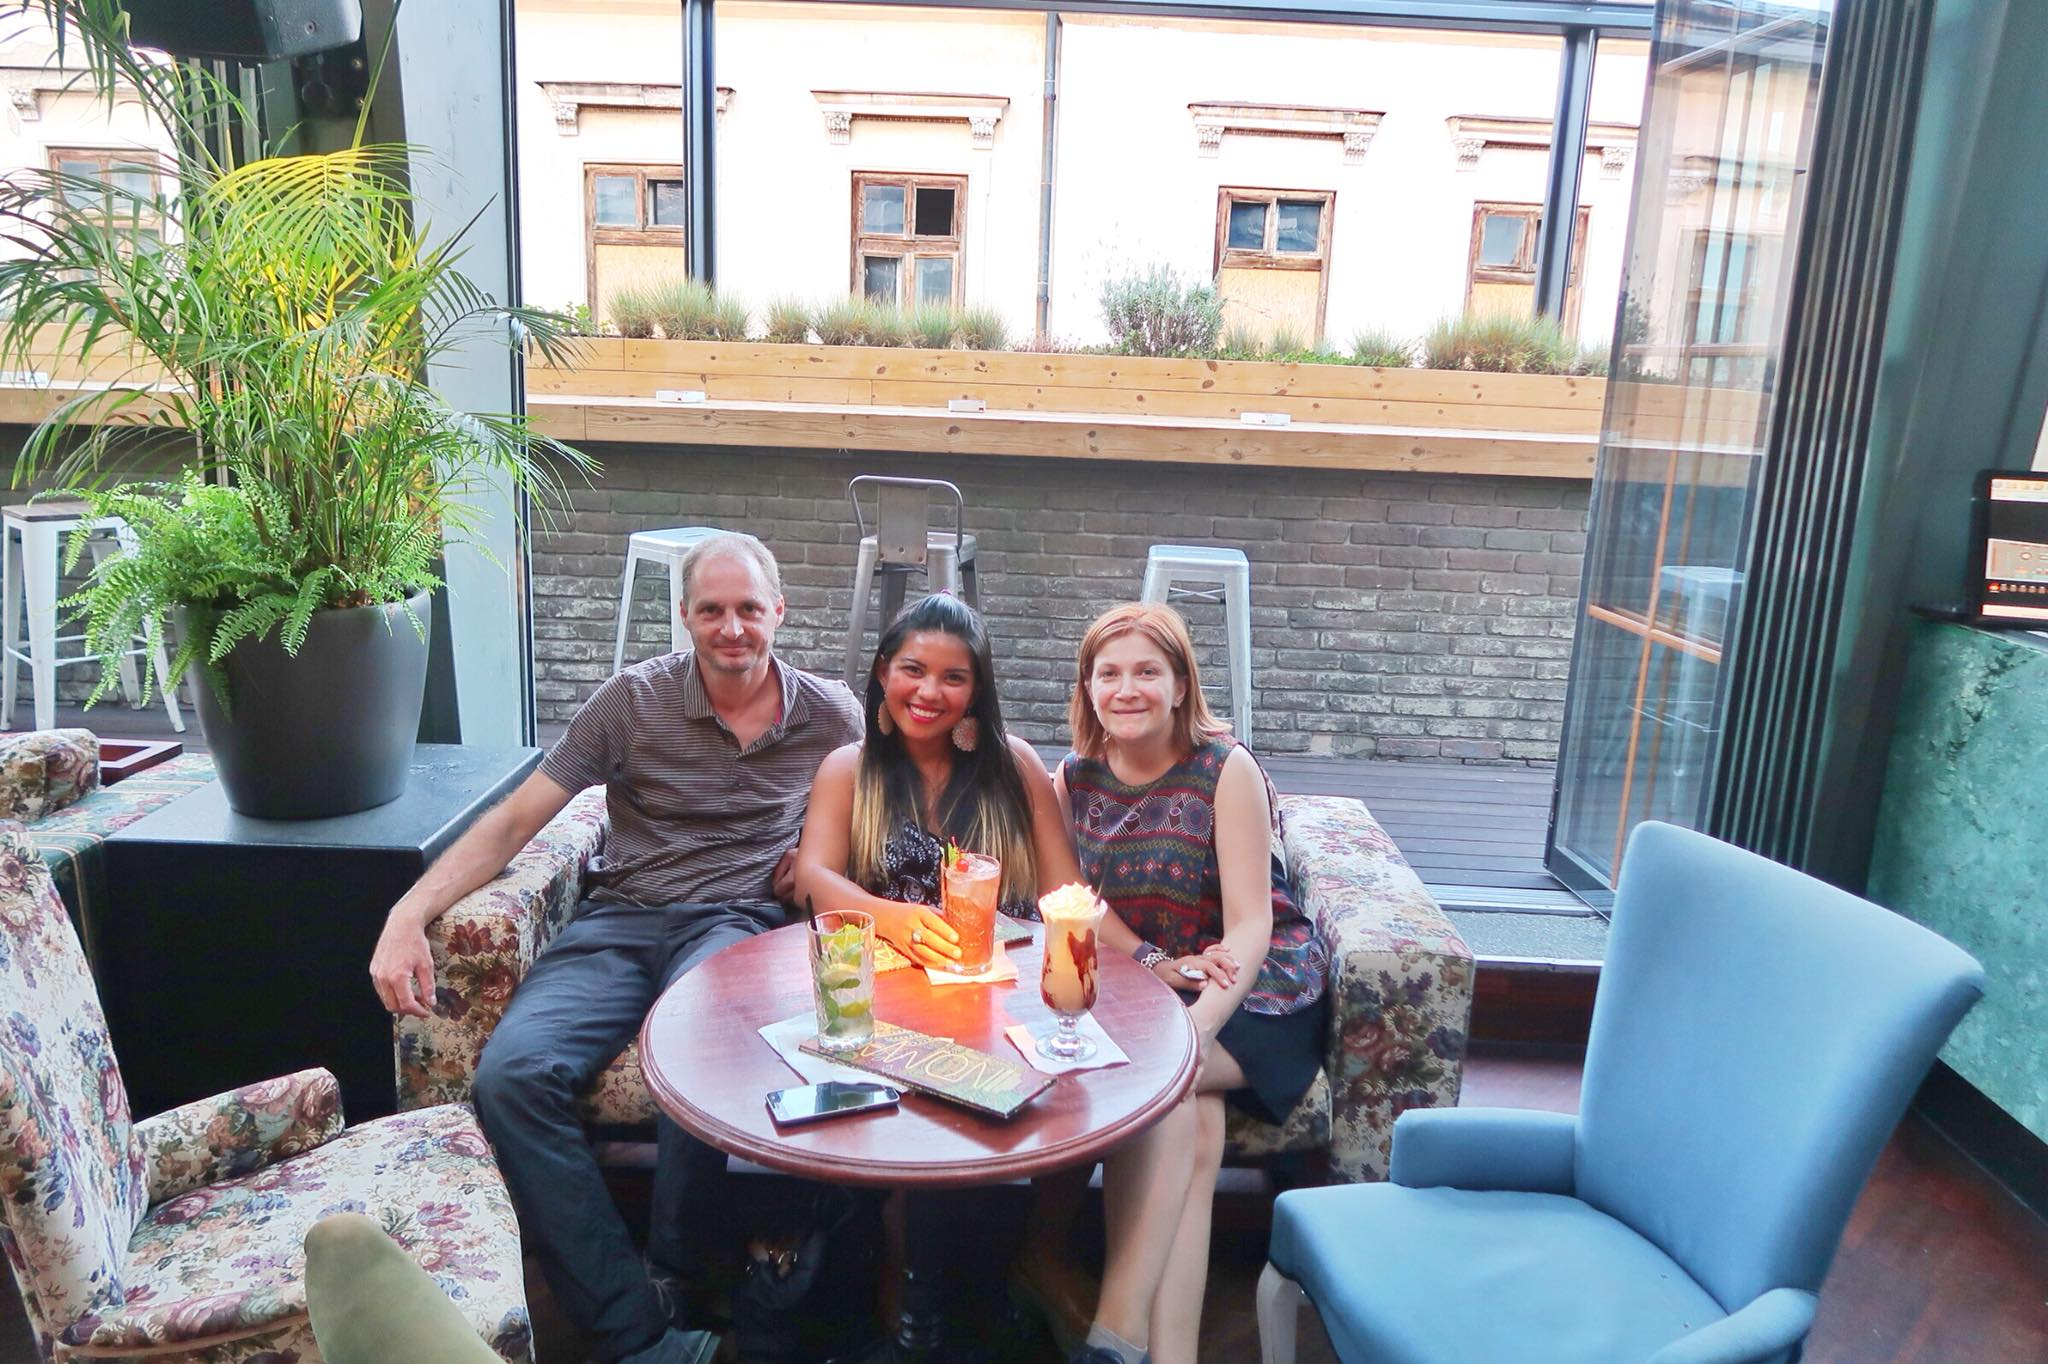 Kach Solo Travels Day 18: Arrival in Bucharest, Romania and meeting local Romanian friends!